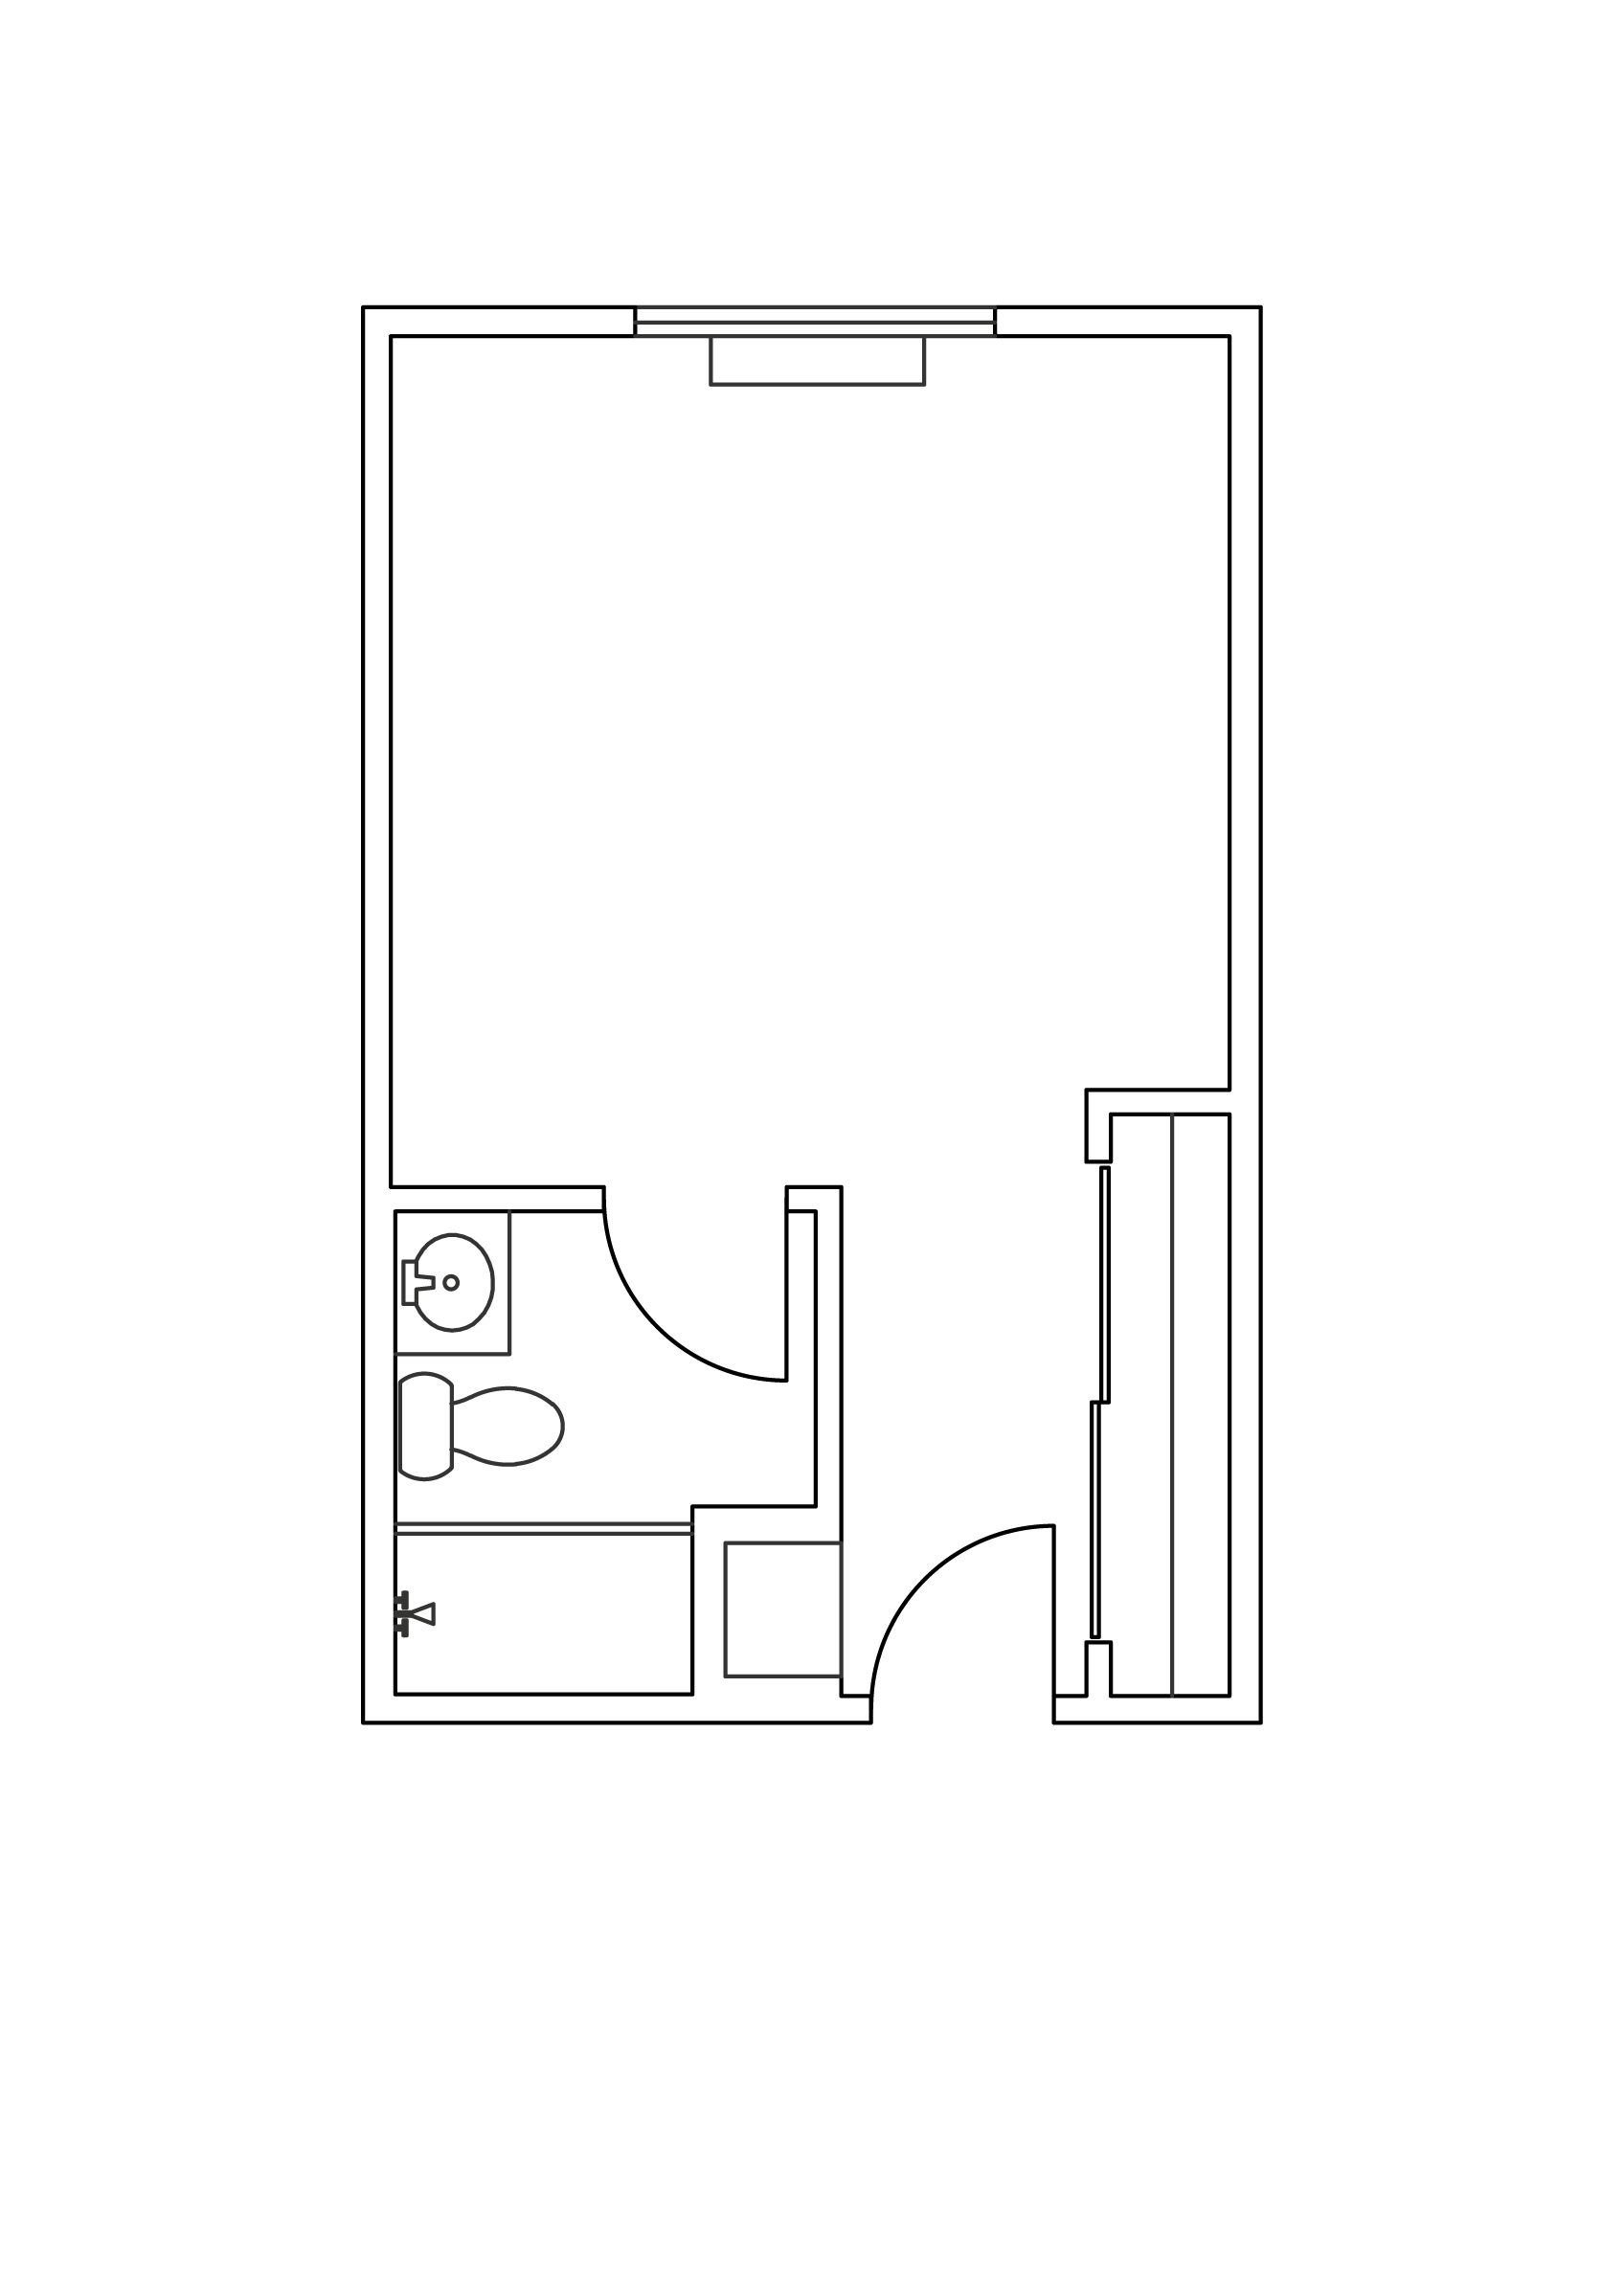 Private or semi-private floor plan.